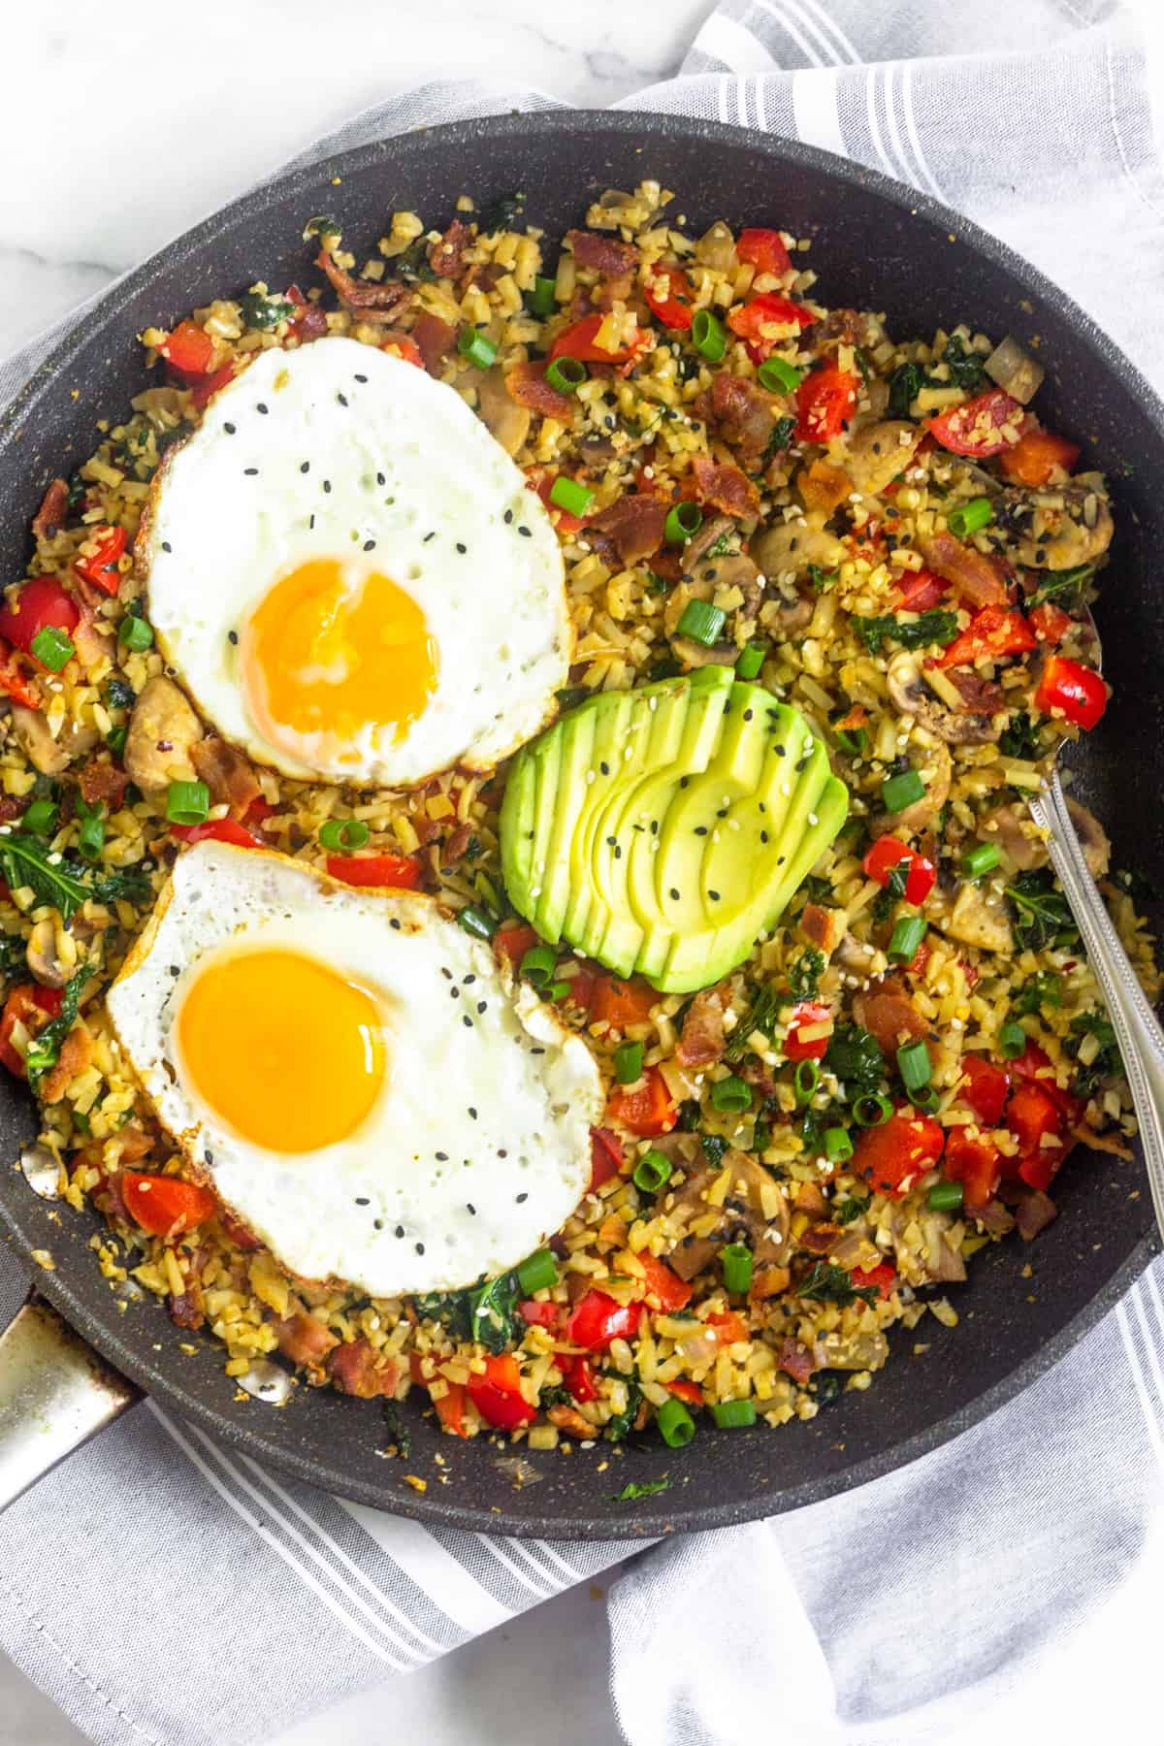 Paleo Breakfast Fried Rice (Whole10) - Breakfast Recipes Paleo